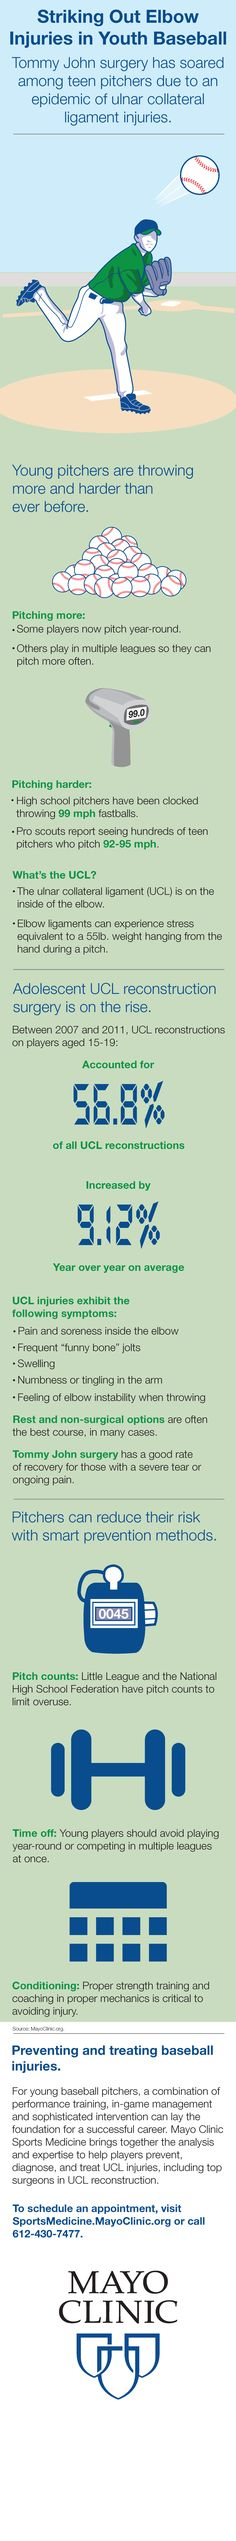 Pitchers can reduce their risk of elbow injuries with smart prevention methods.